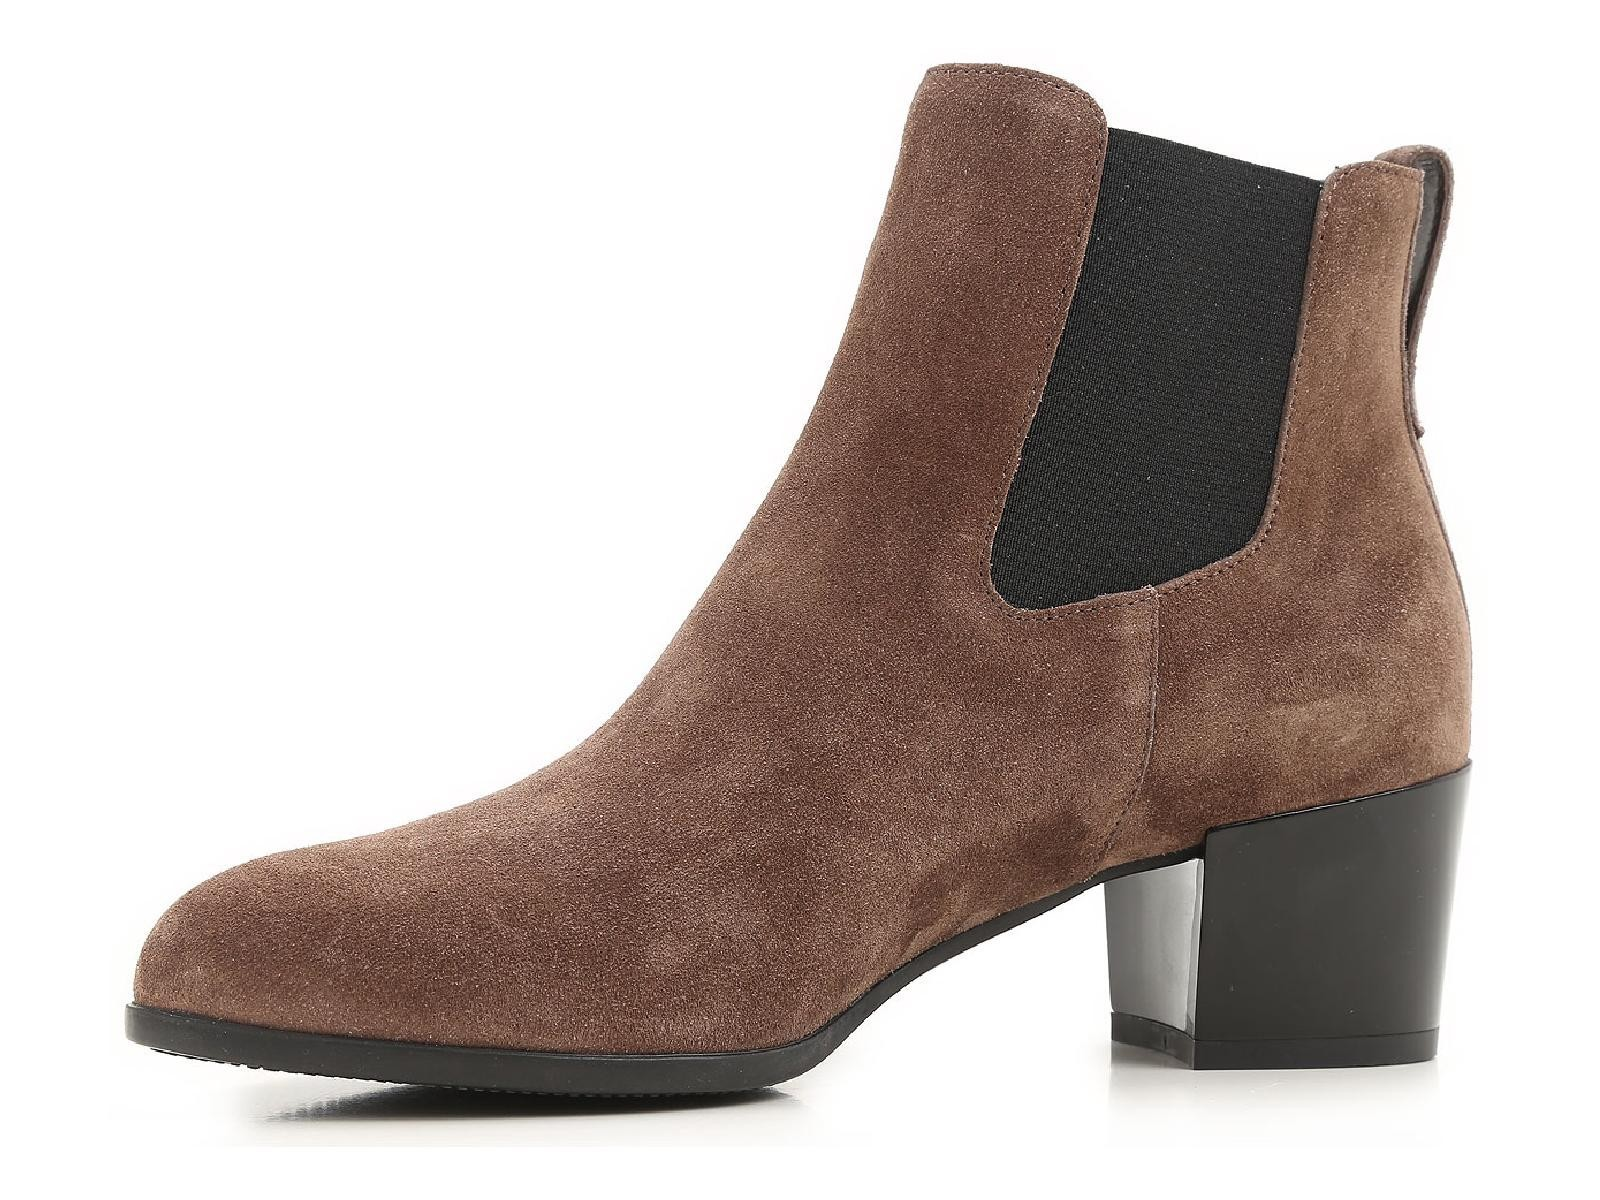 heeled chelsea boots in brown suede leather